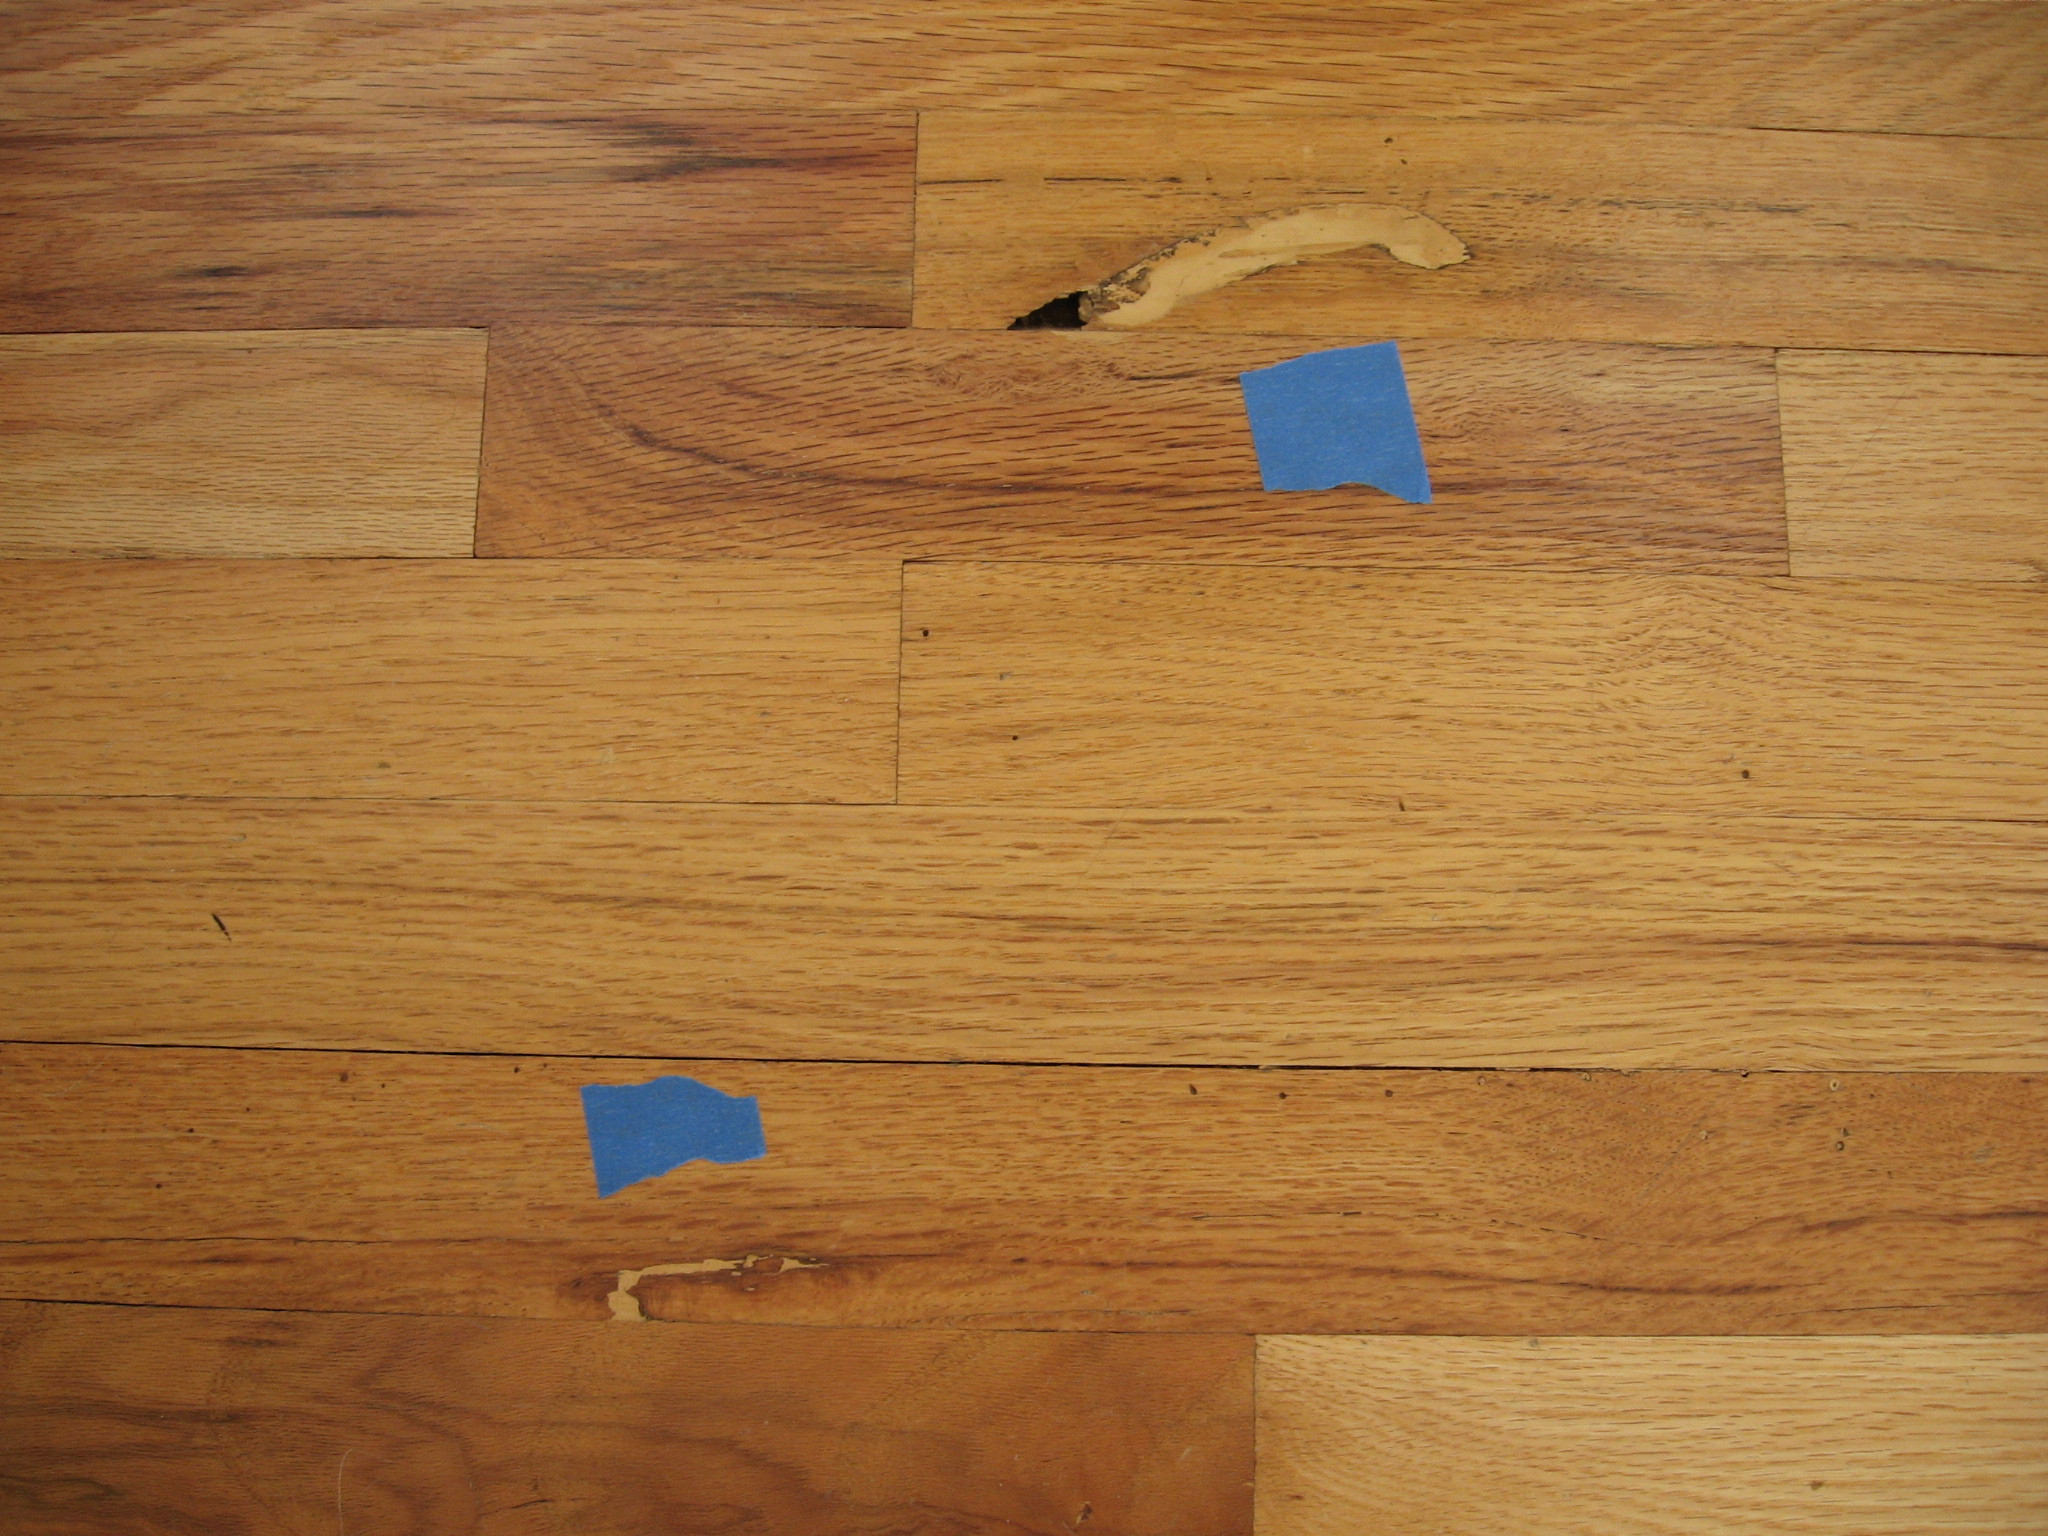 refinish hardwood floors or paint first of wood floor techniques 101 throughout filler bad